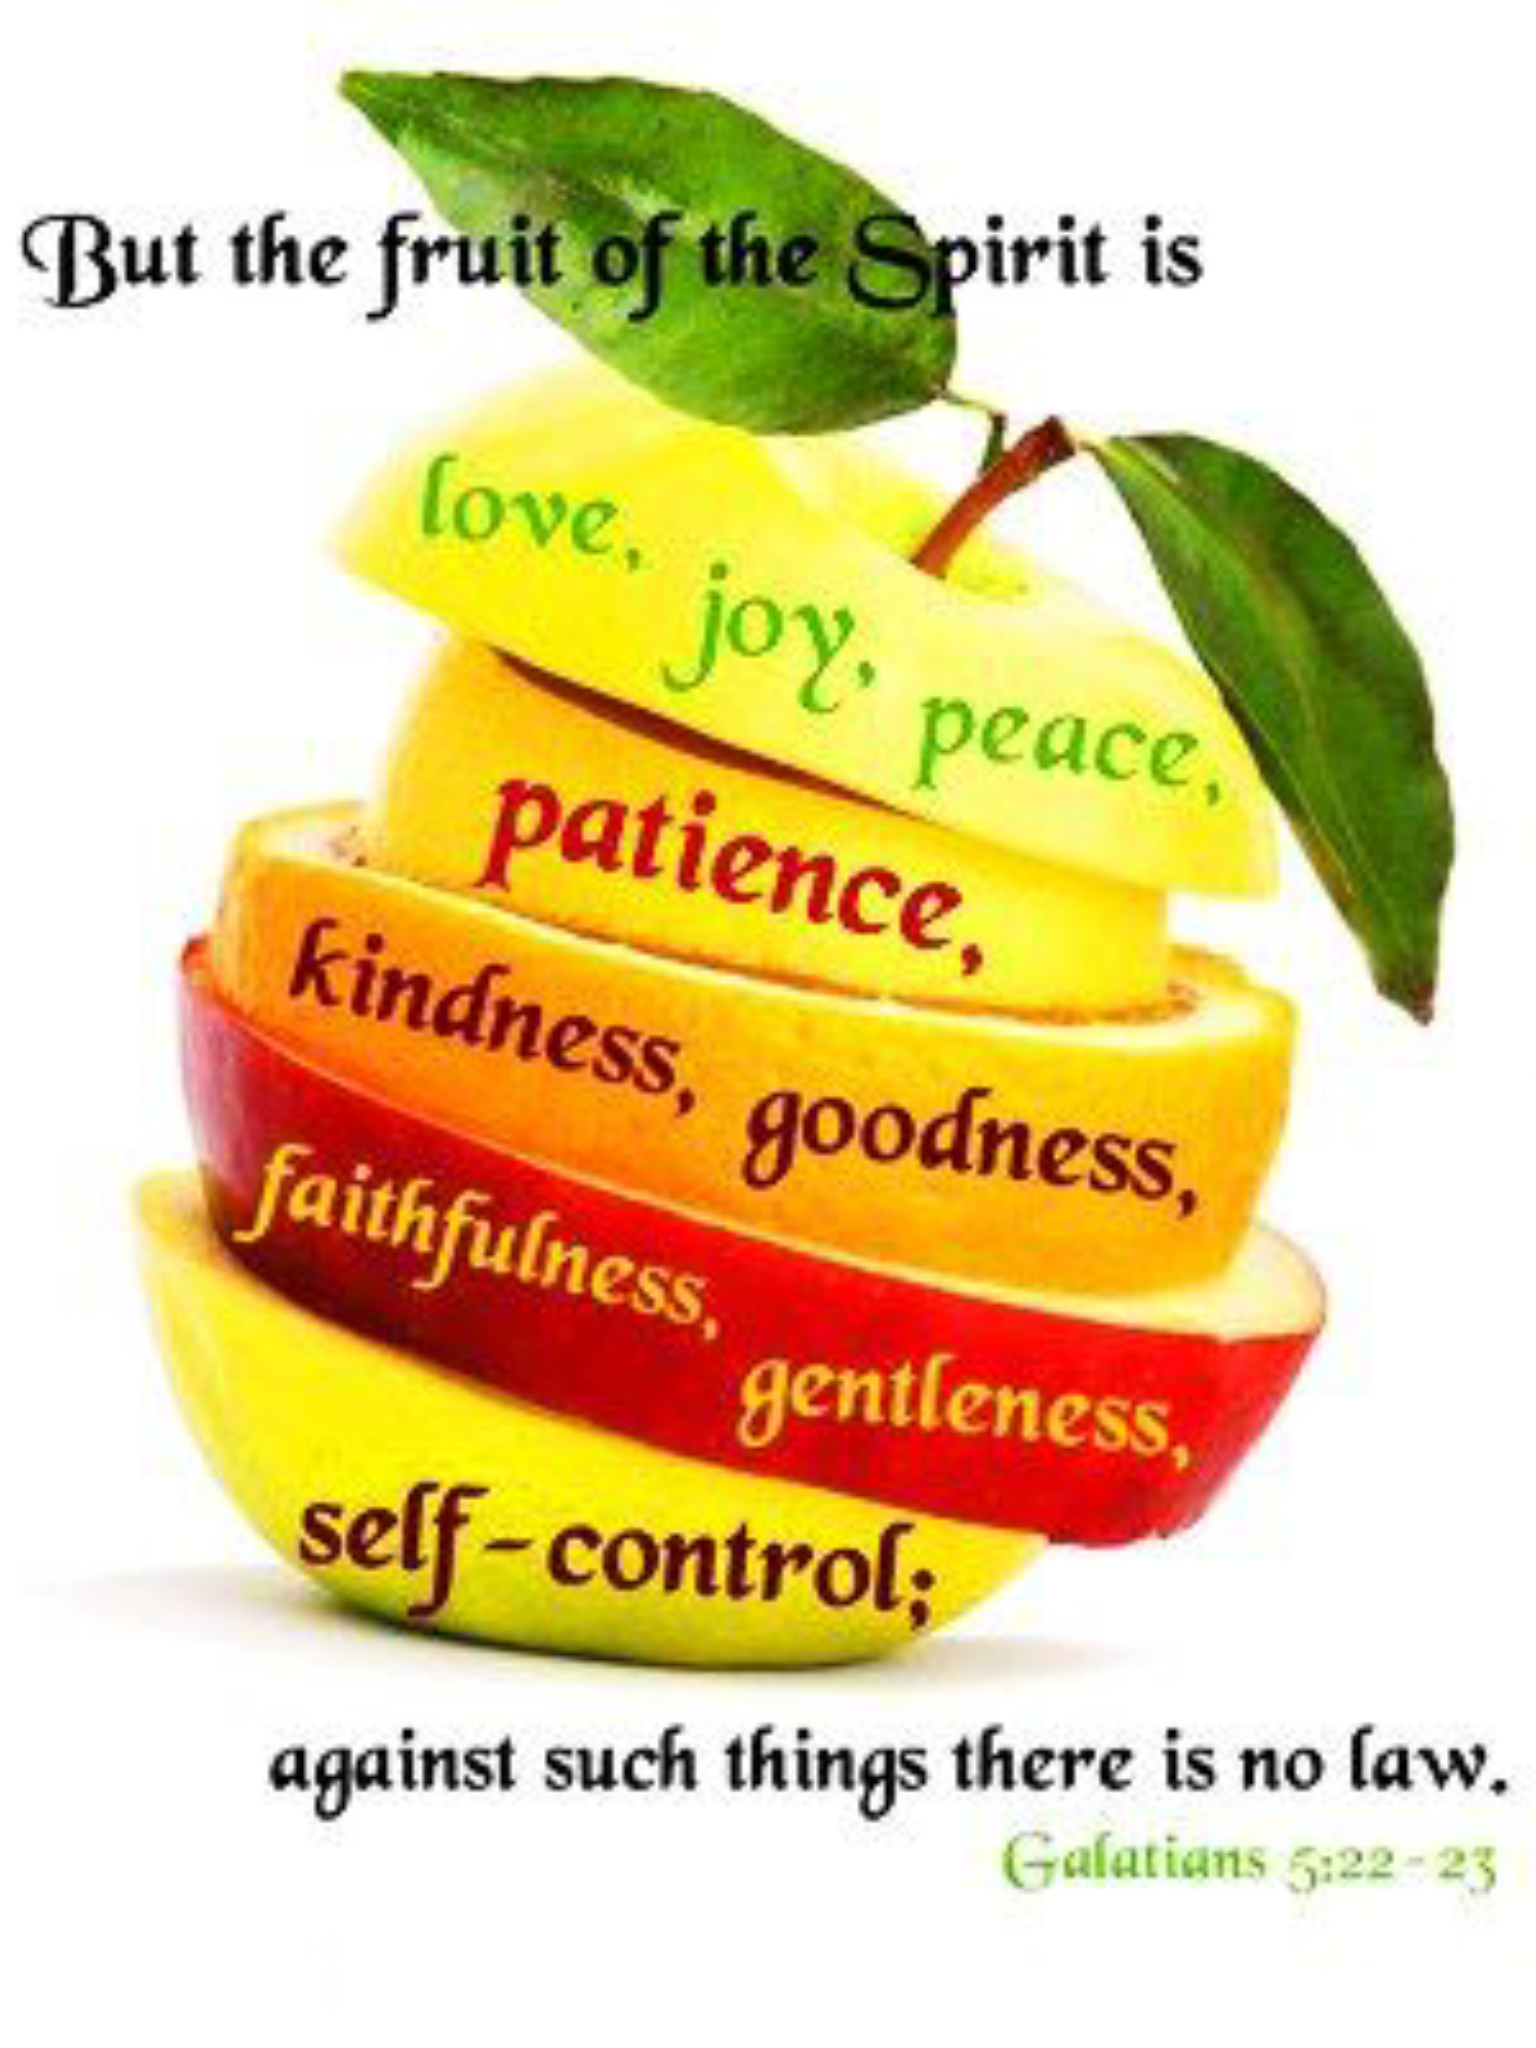 Galatians 5 22 23 Kjv Bearing Fruits Worthy Of Repentance Implies A Process Just As A Tree Does Not Produce Fruit Overnig Fruit Of The Spirit Fruit Spirit